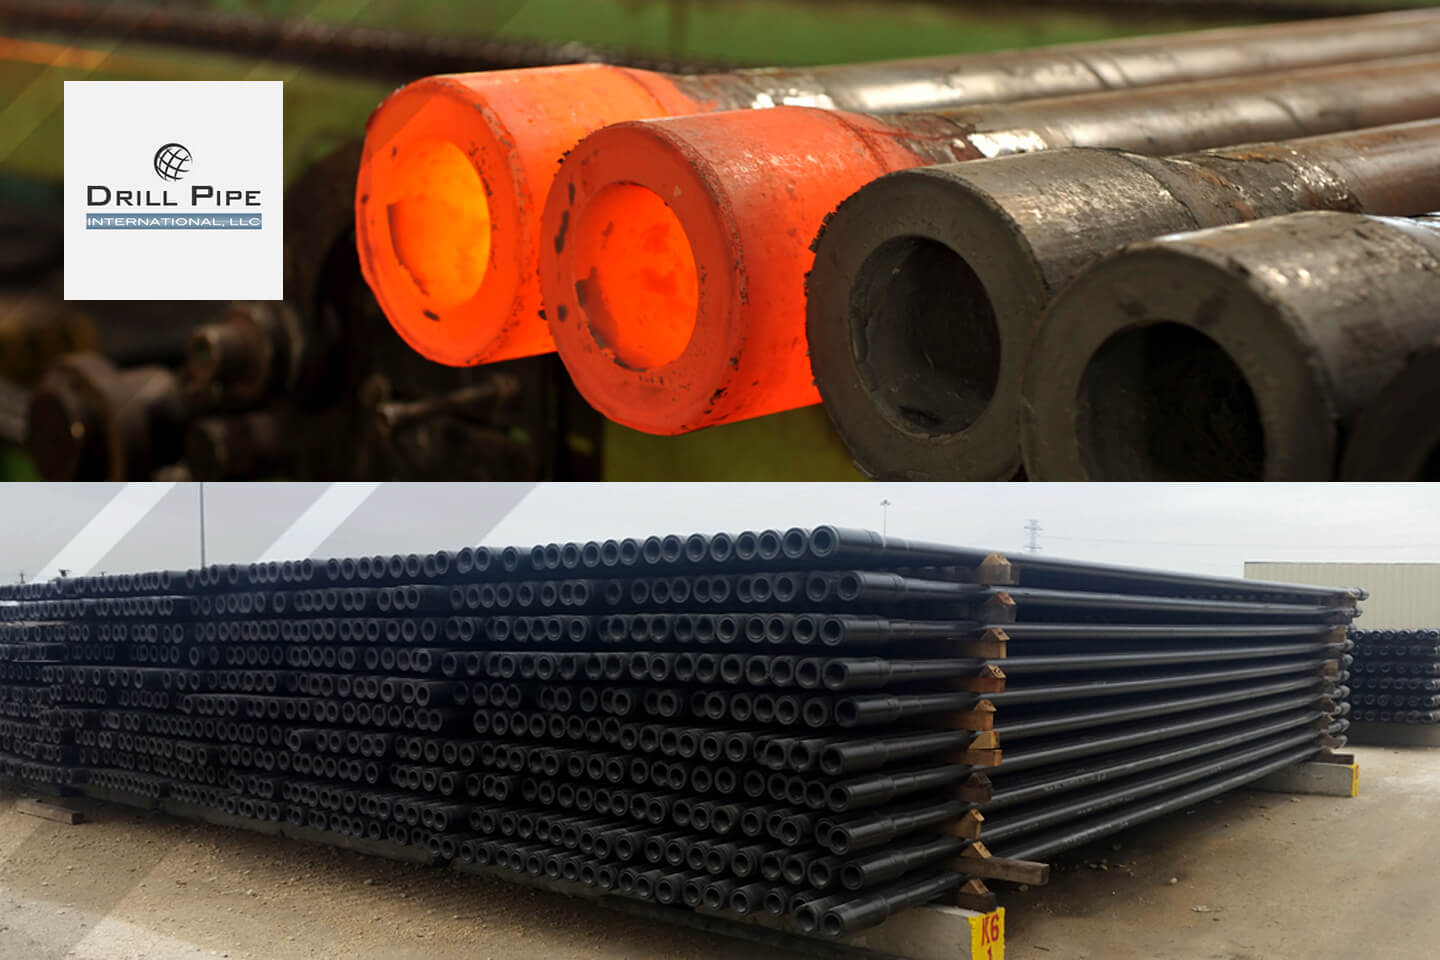 Drill Pipe International, USA